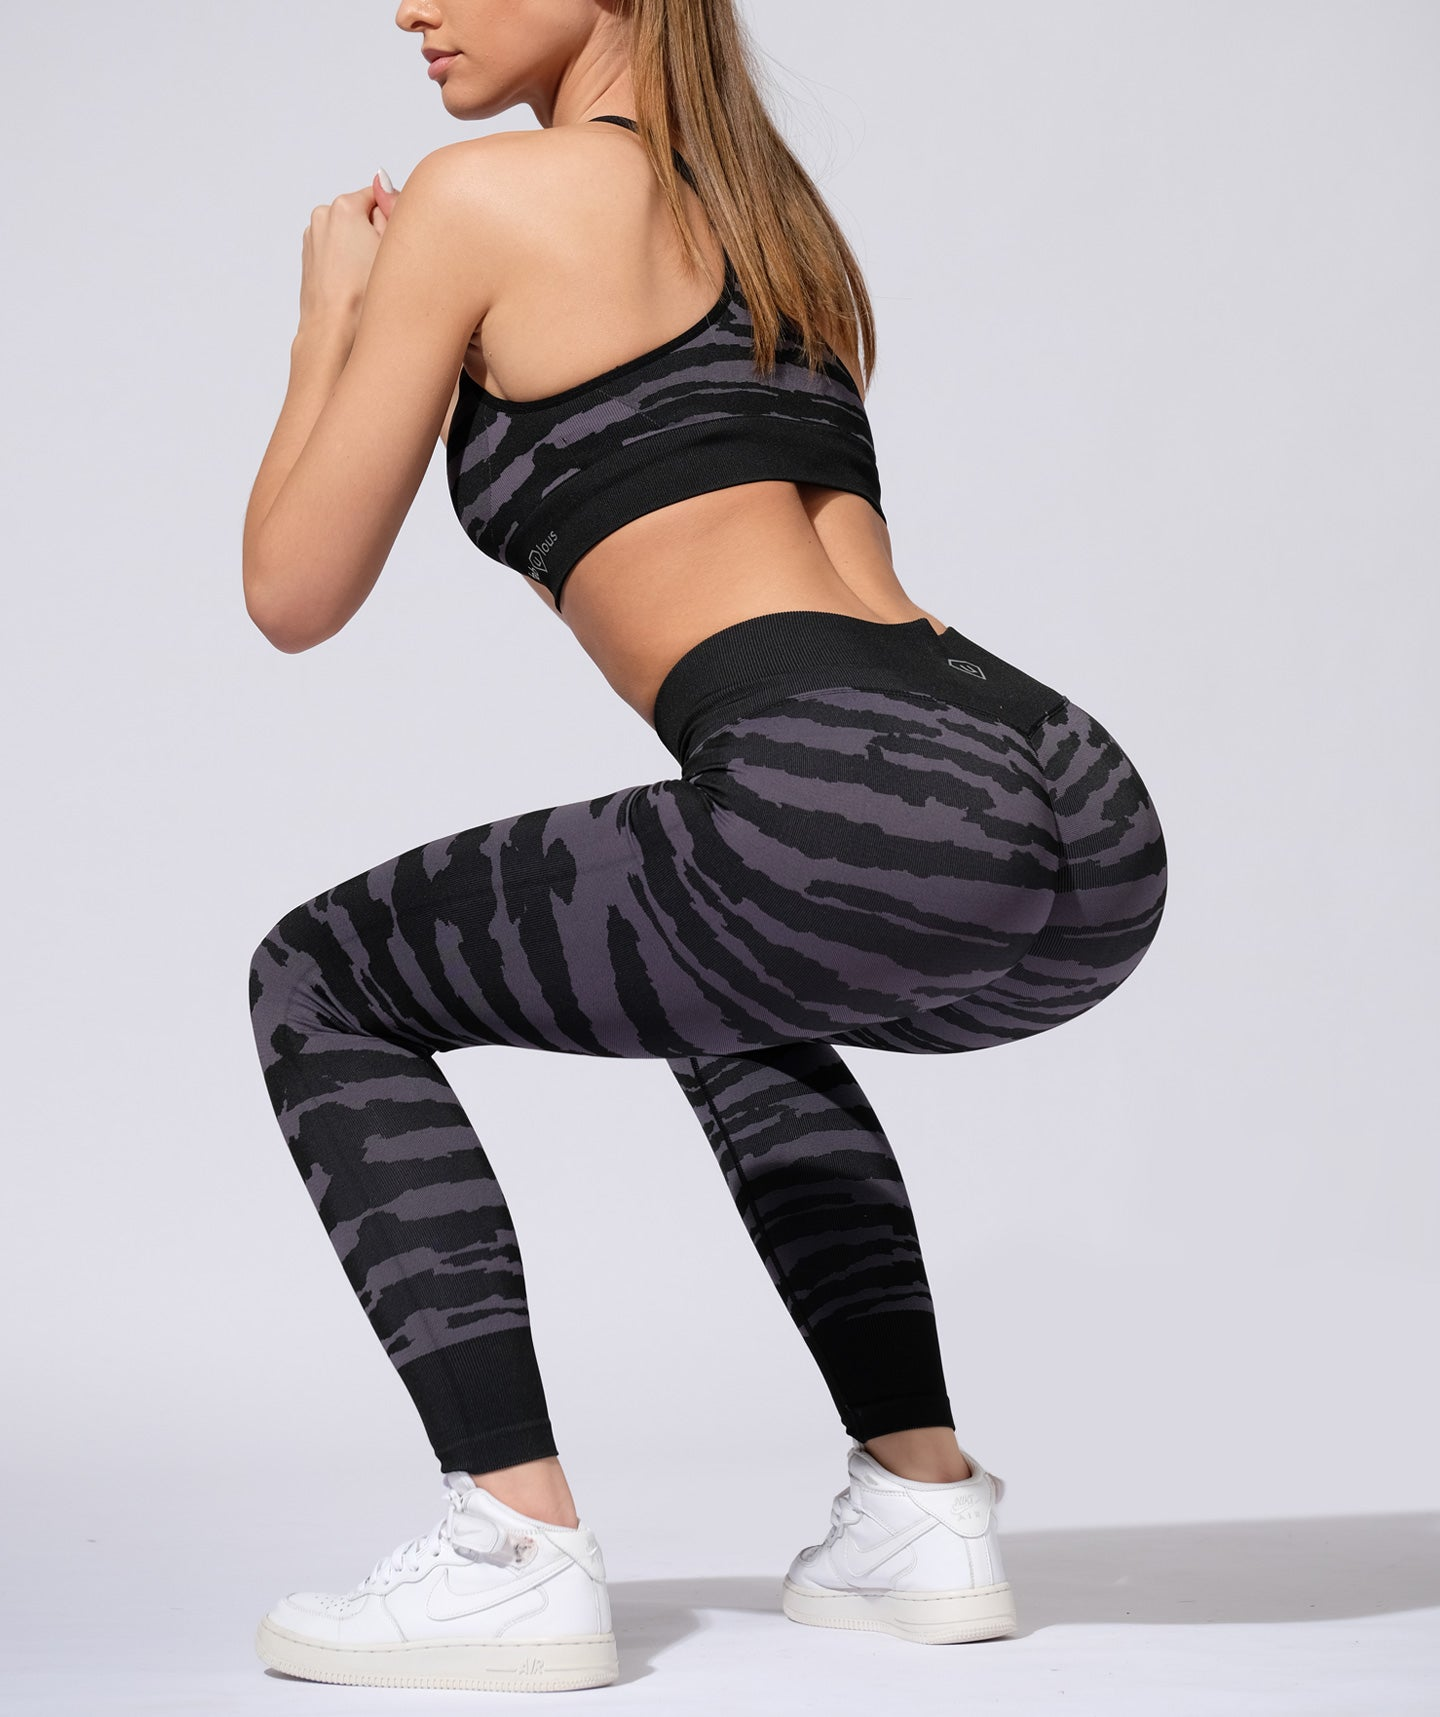 Allure Fitness Set Black